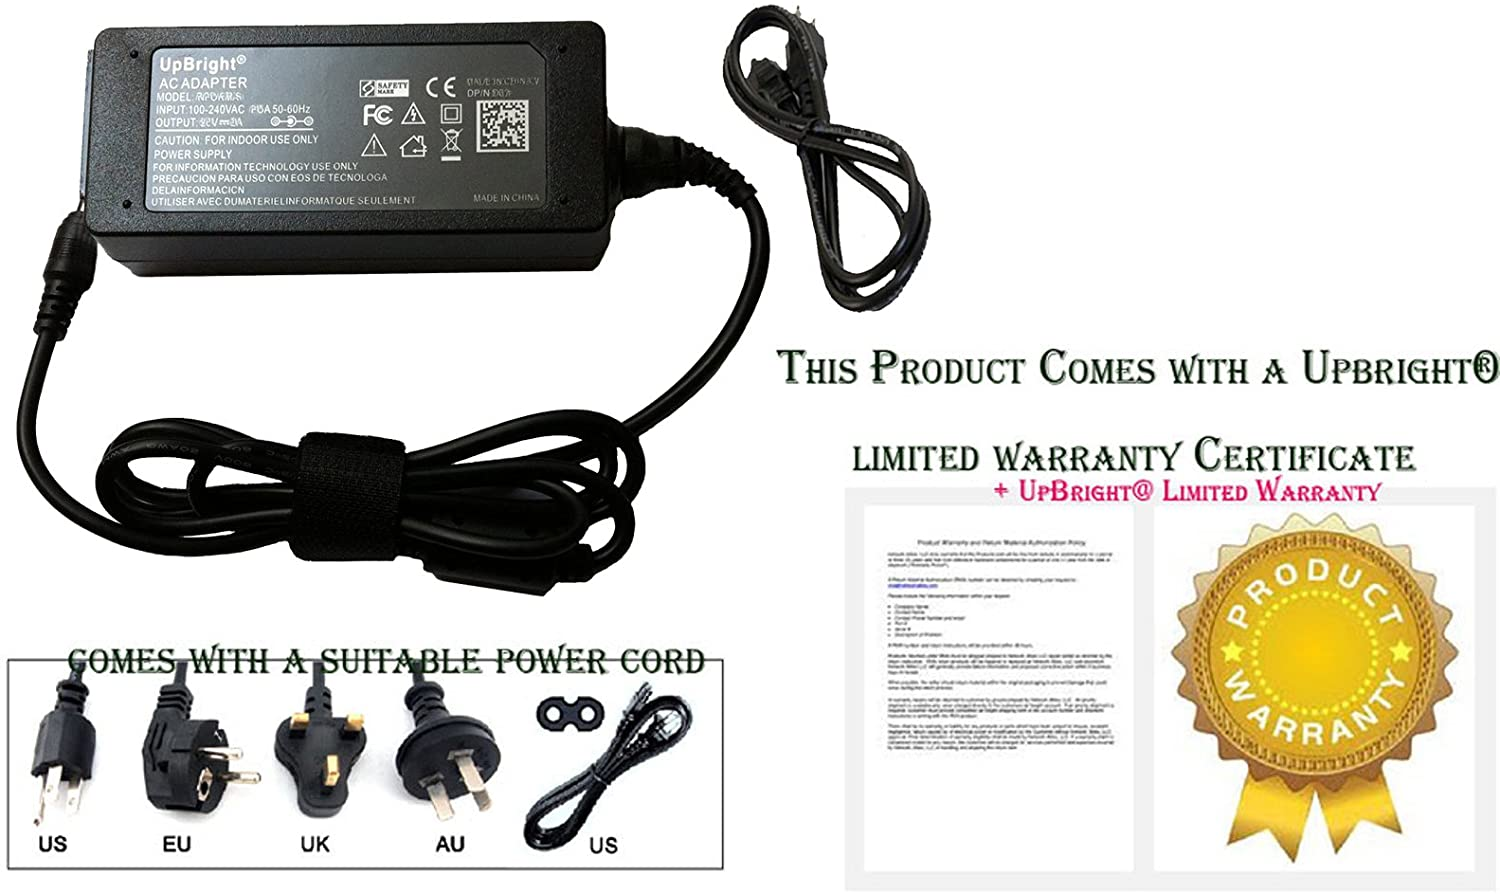 UPBRIGHT New Global AC/DC Adapter for AEMC 5000.57 6470-B 6470B Digital Ground Resistance Tester Power Supply Cord Cable PS Charger Mains PSU